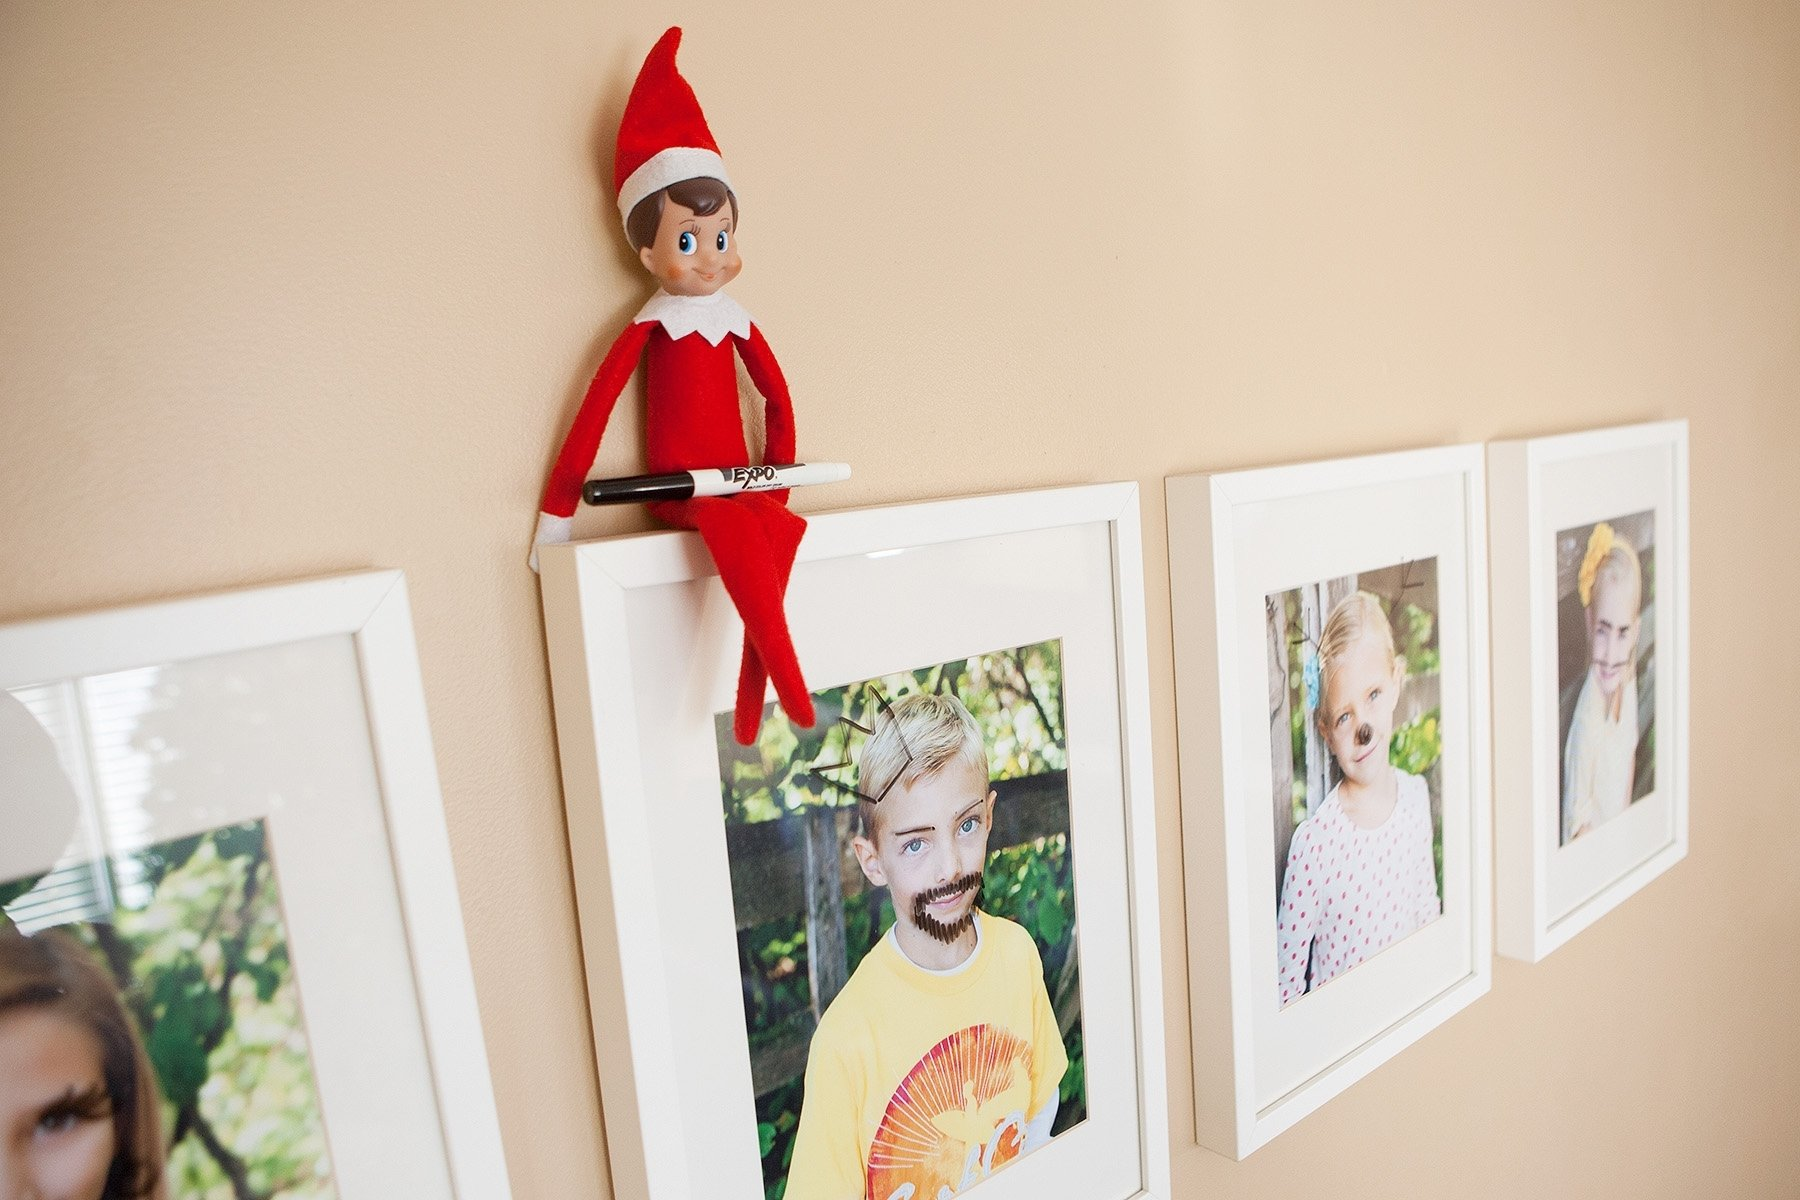 10 Unique Elf On The Self Ideas than 40 easy elf on the shelf ideas 3 2021